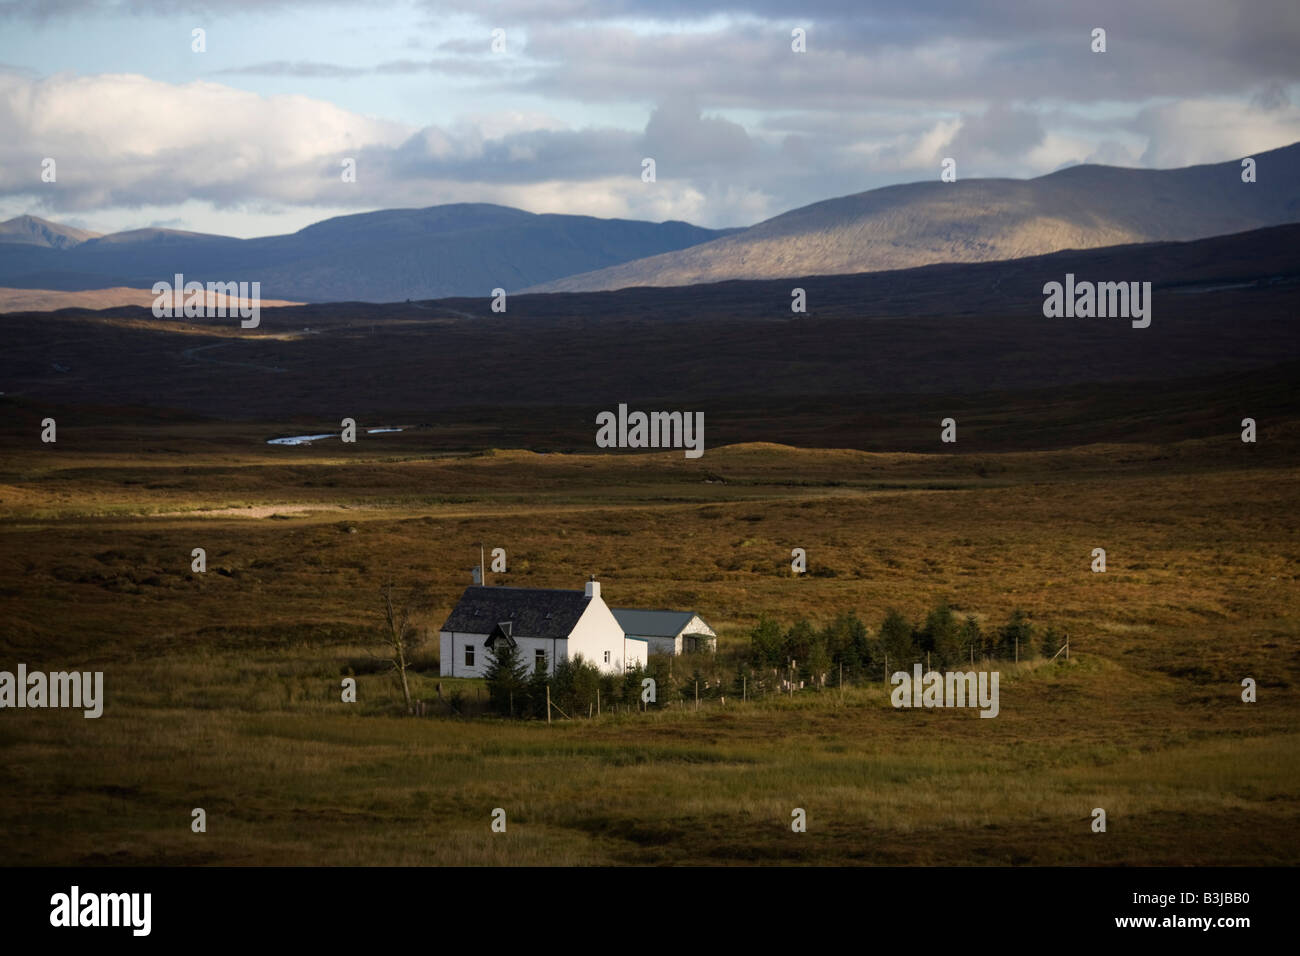 A crofter's cottage sits isolated in a deserted plain at Altnafeadh in the Glencoe region, Scottish Highland - Stock Image